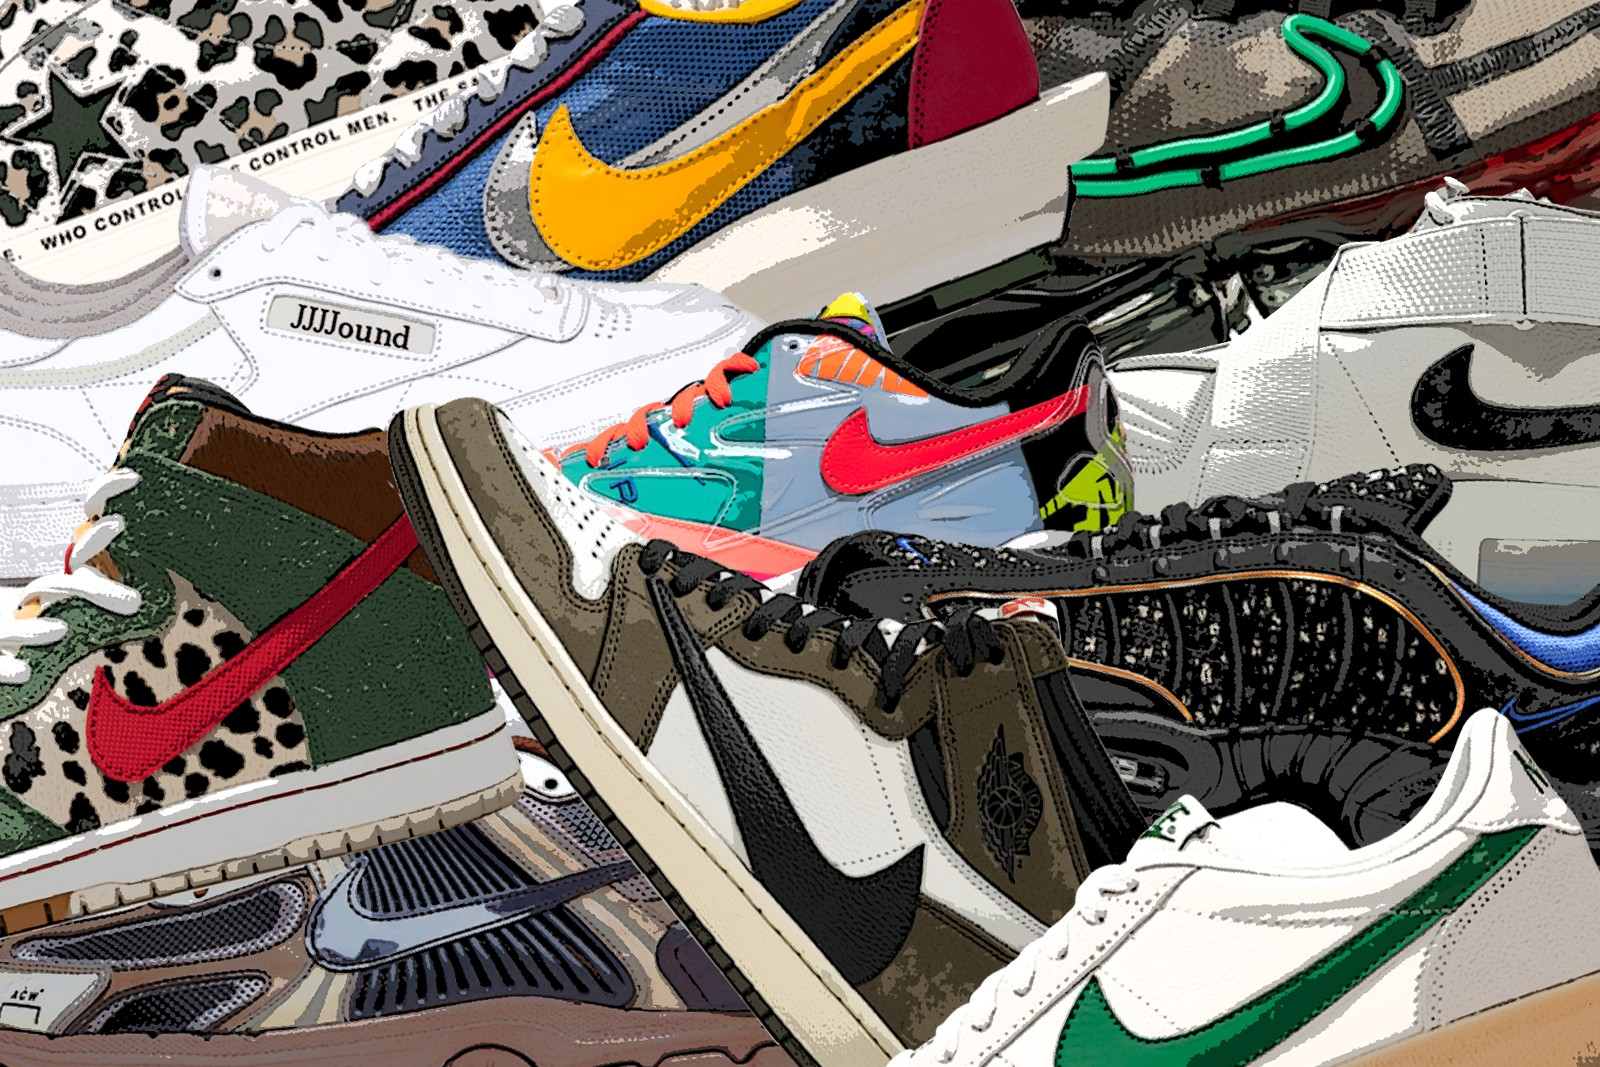 e4a37d345eef Best Sneakers of 2019 So Far By HYPEBEAST Editors | HYPEBEAST